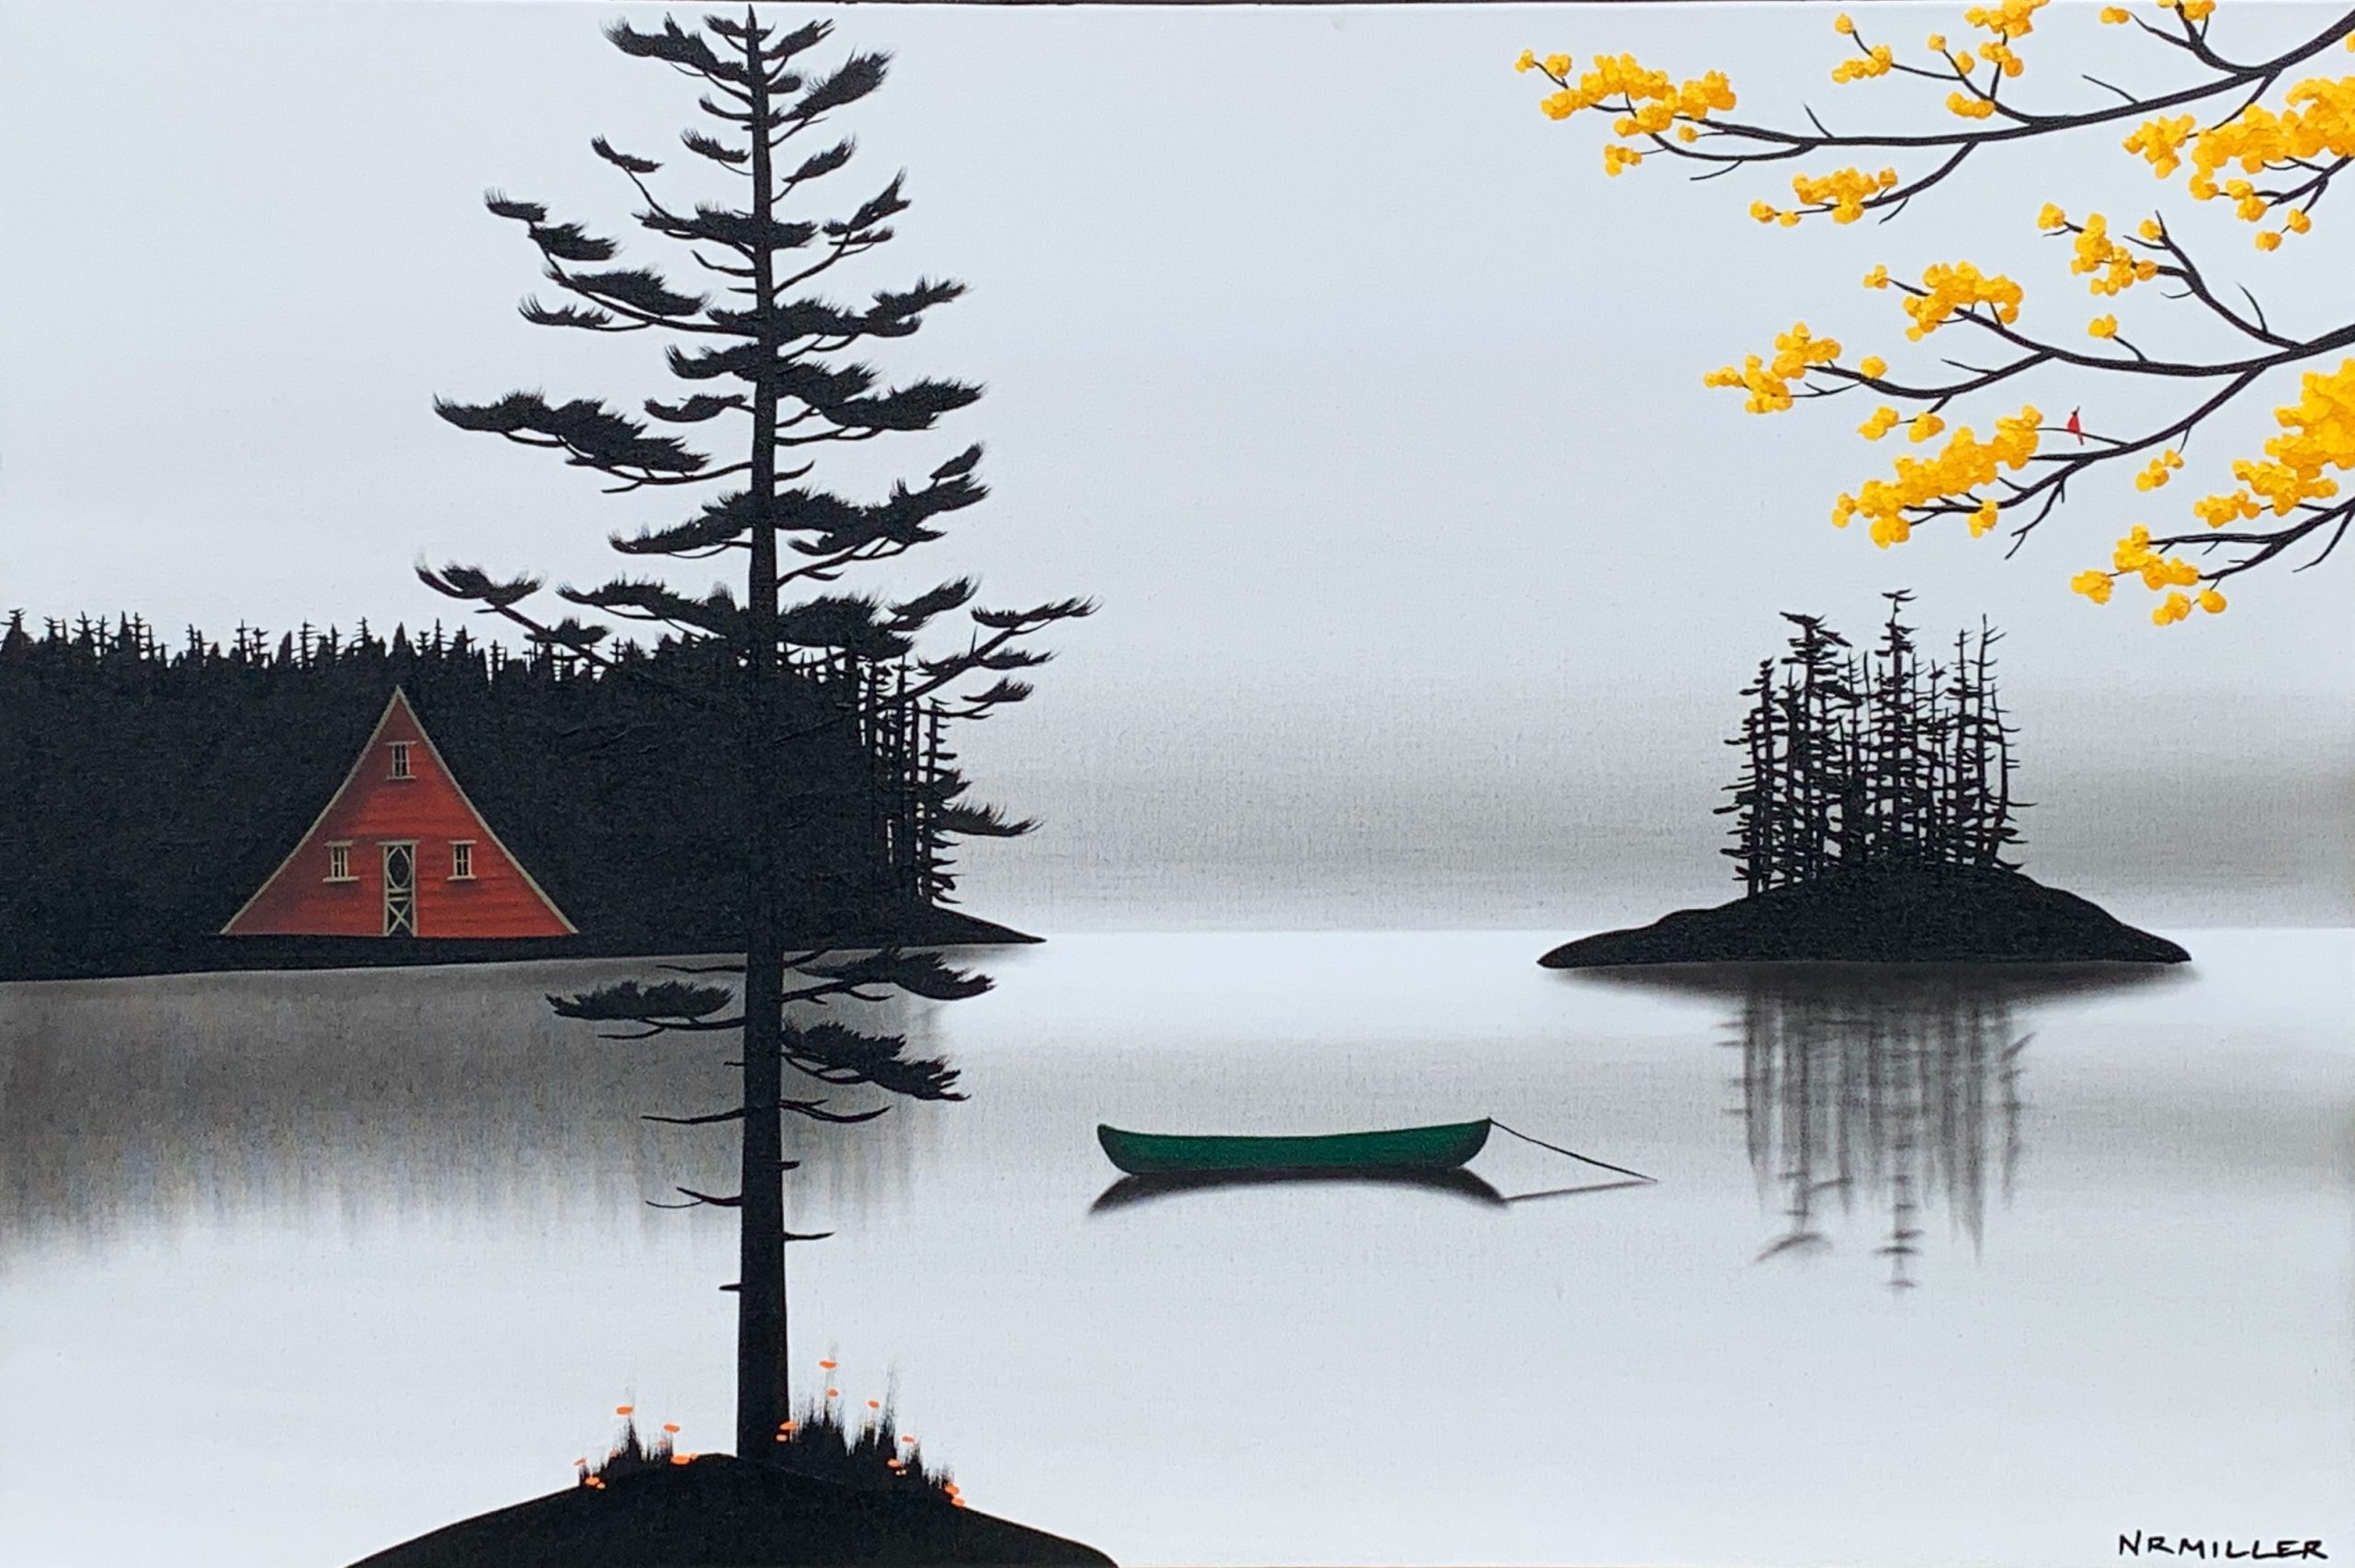 The Sounds of Silence, mixed media landscape by Natasha Miller | Effusion Art Gallery + Cast Glass Studio, Invermere BC